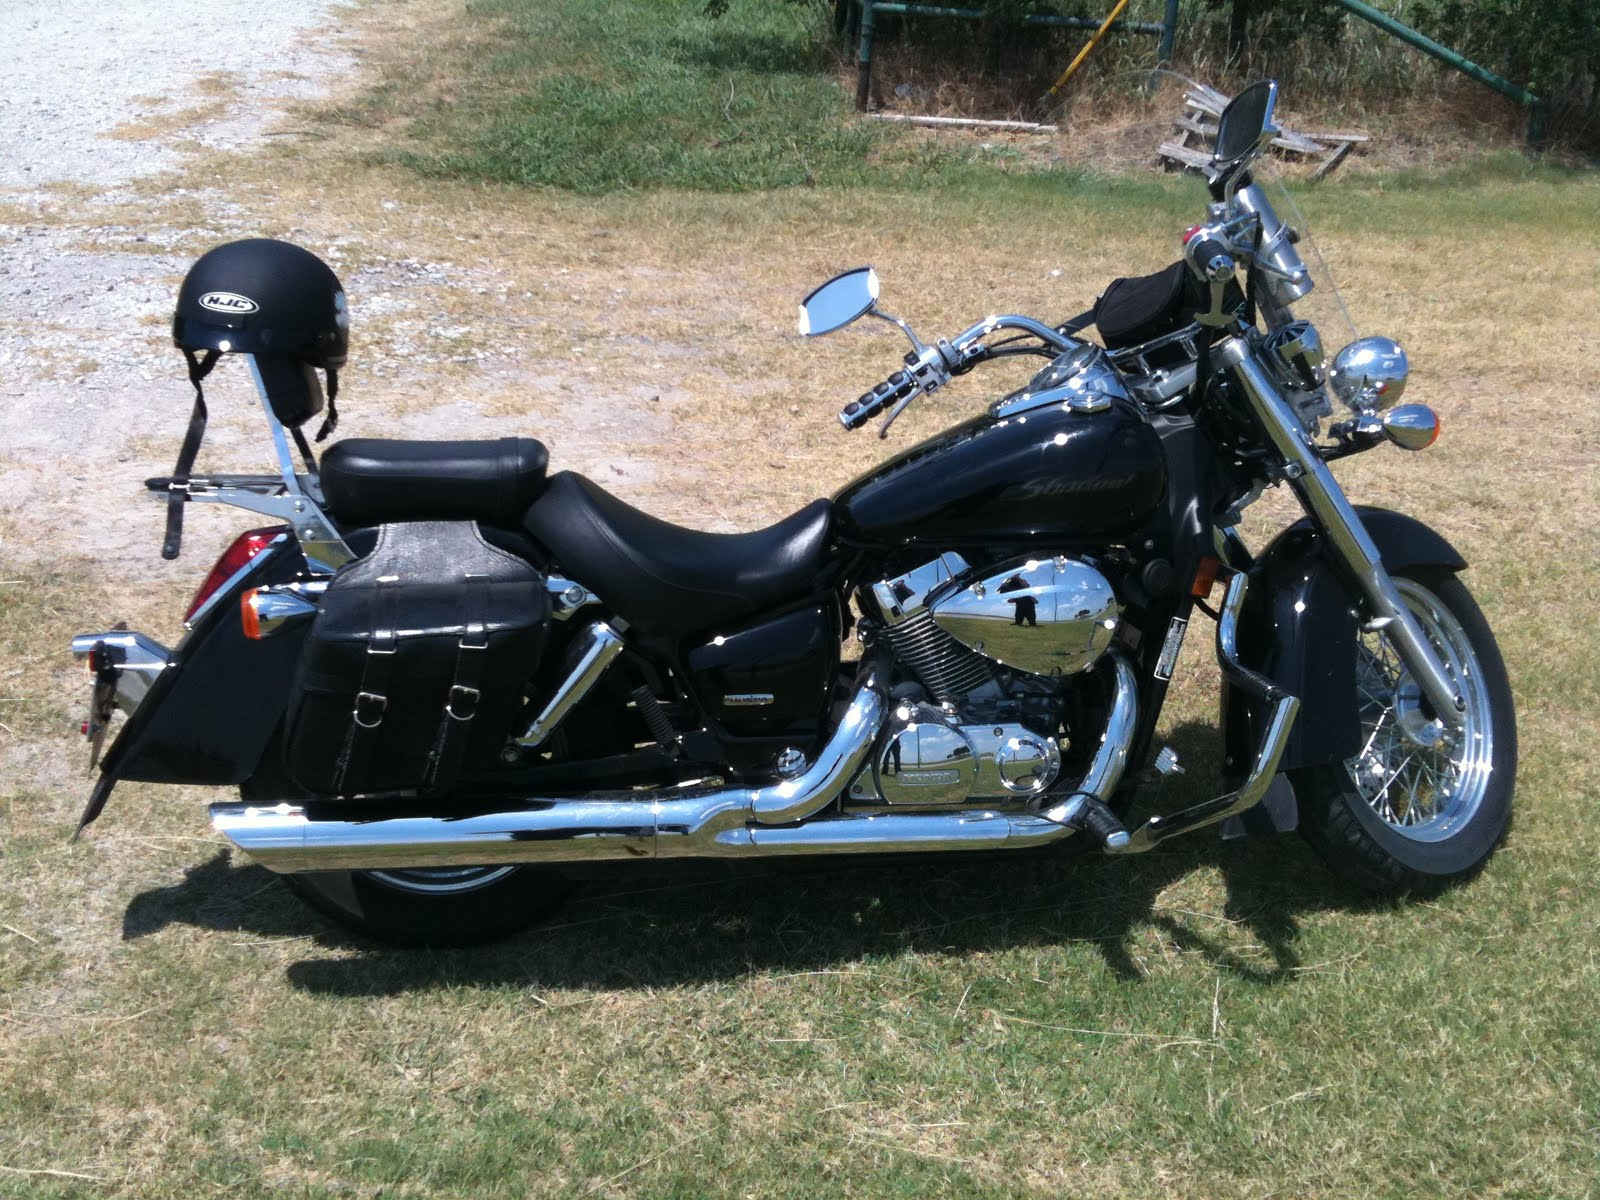 Service manuals are here for download honda shadow forums service manuals are here for download honda shadow forums shadow motorcycle forum fandeluxe Image collections